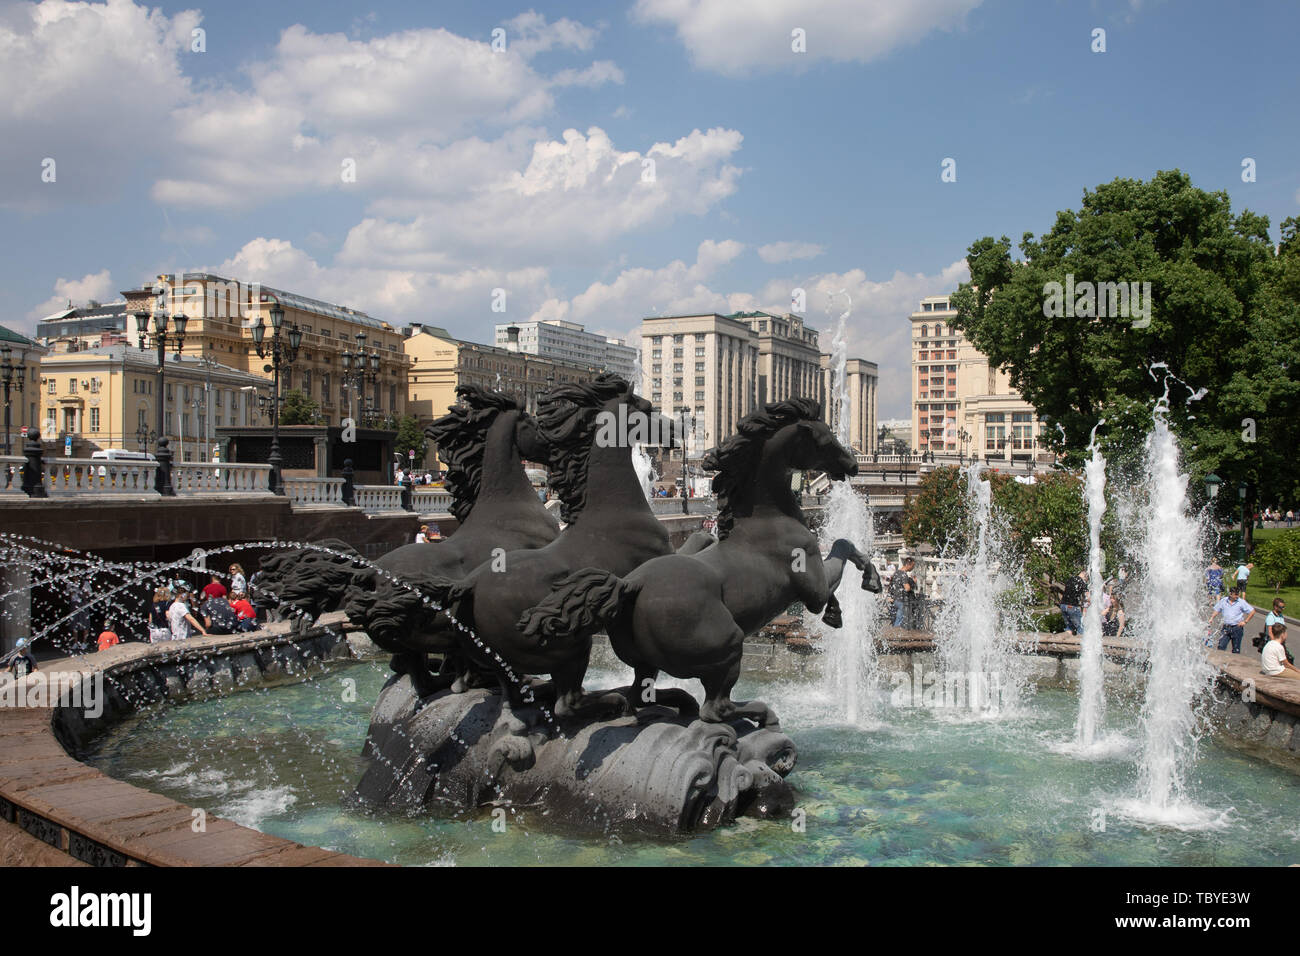 Moscow. 28th May, 2019. Photo taken on May 28, 2019 shows a fountain in Moscow, capital of Russia. Chinese President Xi Jinping will pay a state visit to Russia from June 5 to 7 at the invitation of Russian President Vladimir Putin, a Chinese Foreign Ministry spokesperson announced on Wednesday at a press briefing. Xi will also attend the 23rd St. Petersburg International Economic Forum during his stay, according to spokesperson Lu Kang. Credit: Bai Xueqi/Xinhua/Alamy Live News - Stock Image